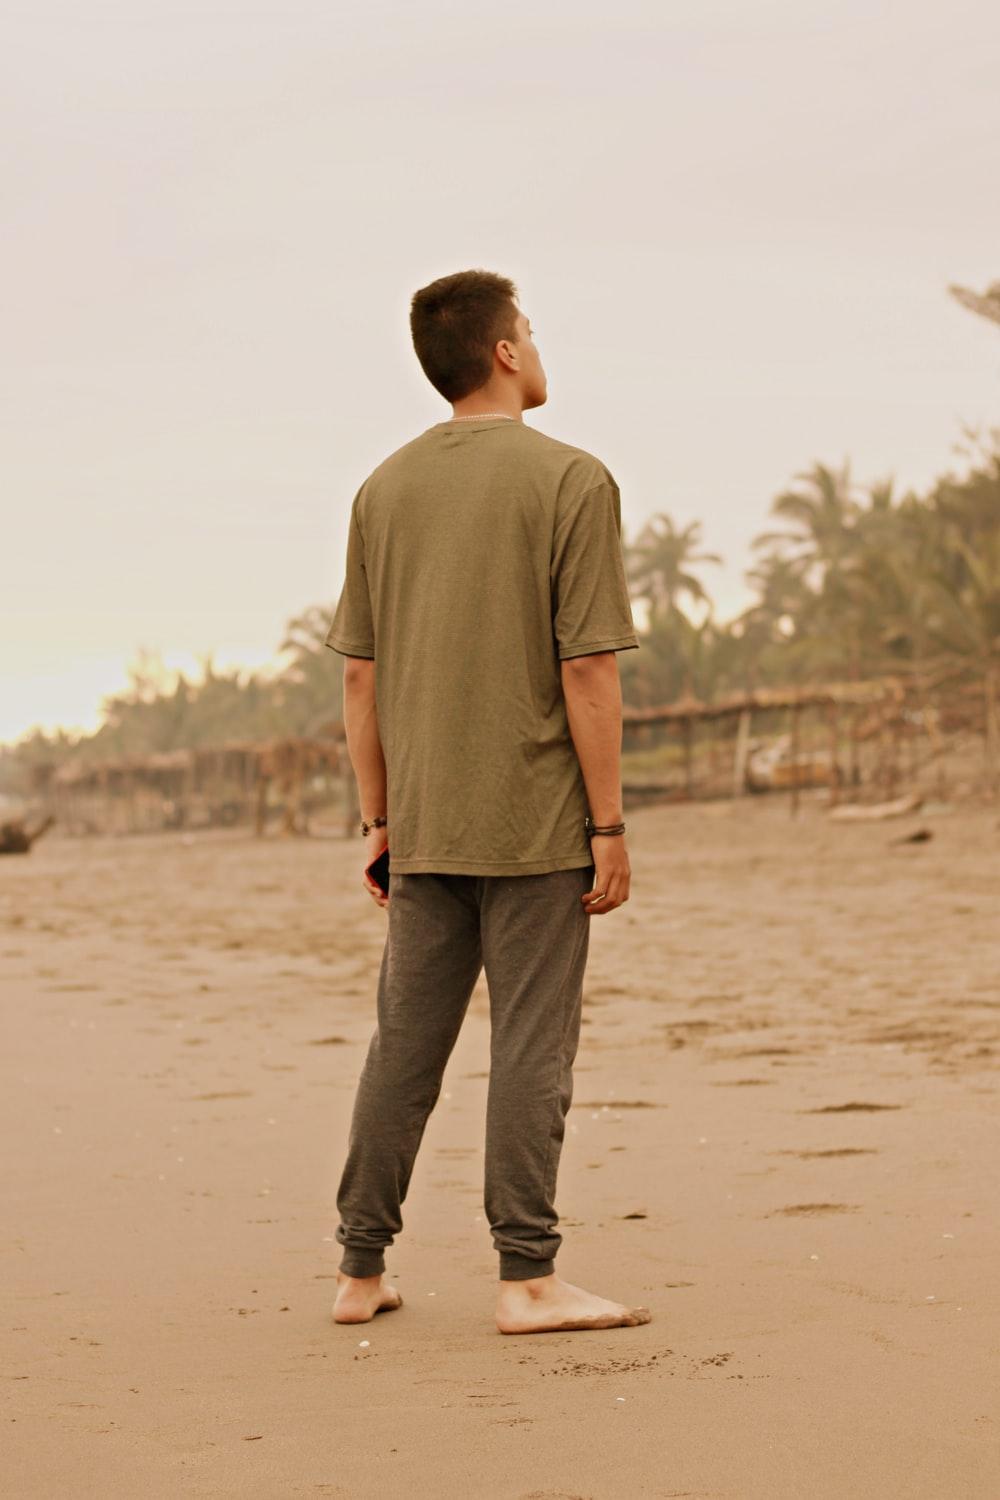 man in brown t-shirt and black pants walking on brown sand during daytime